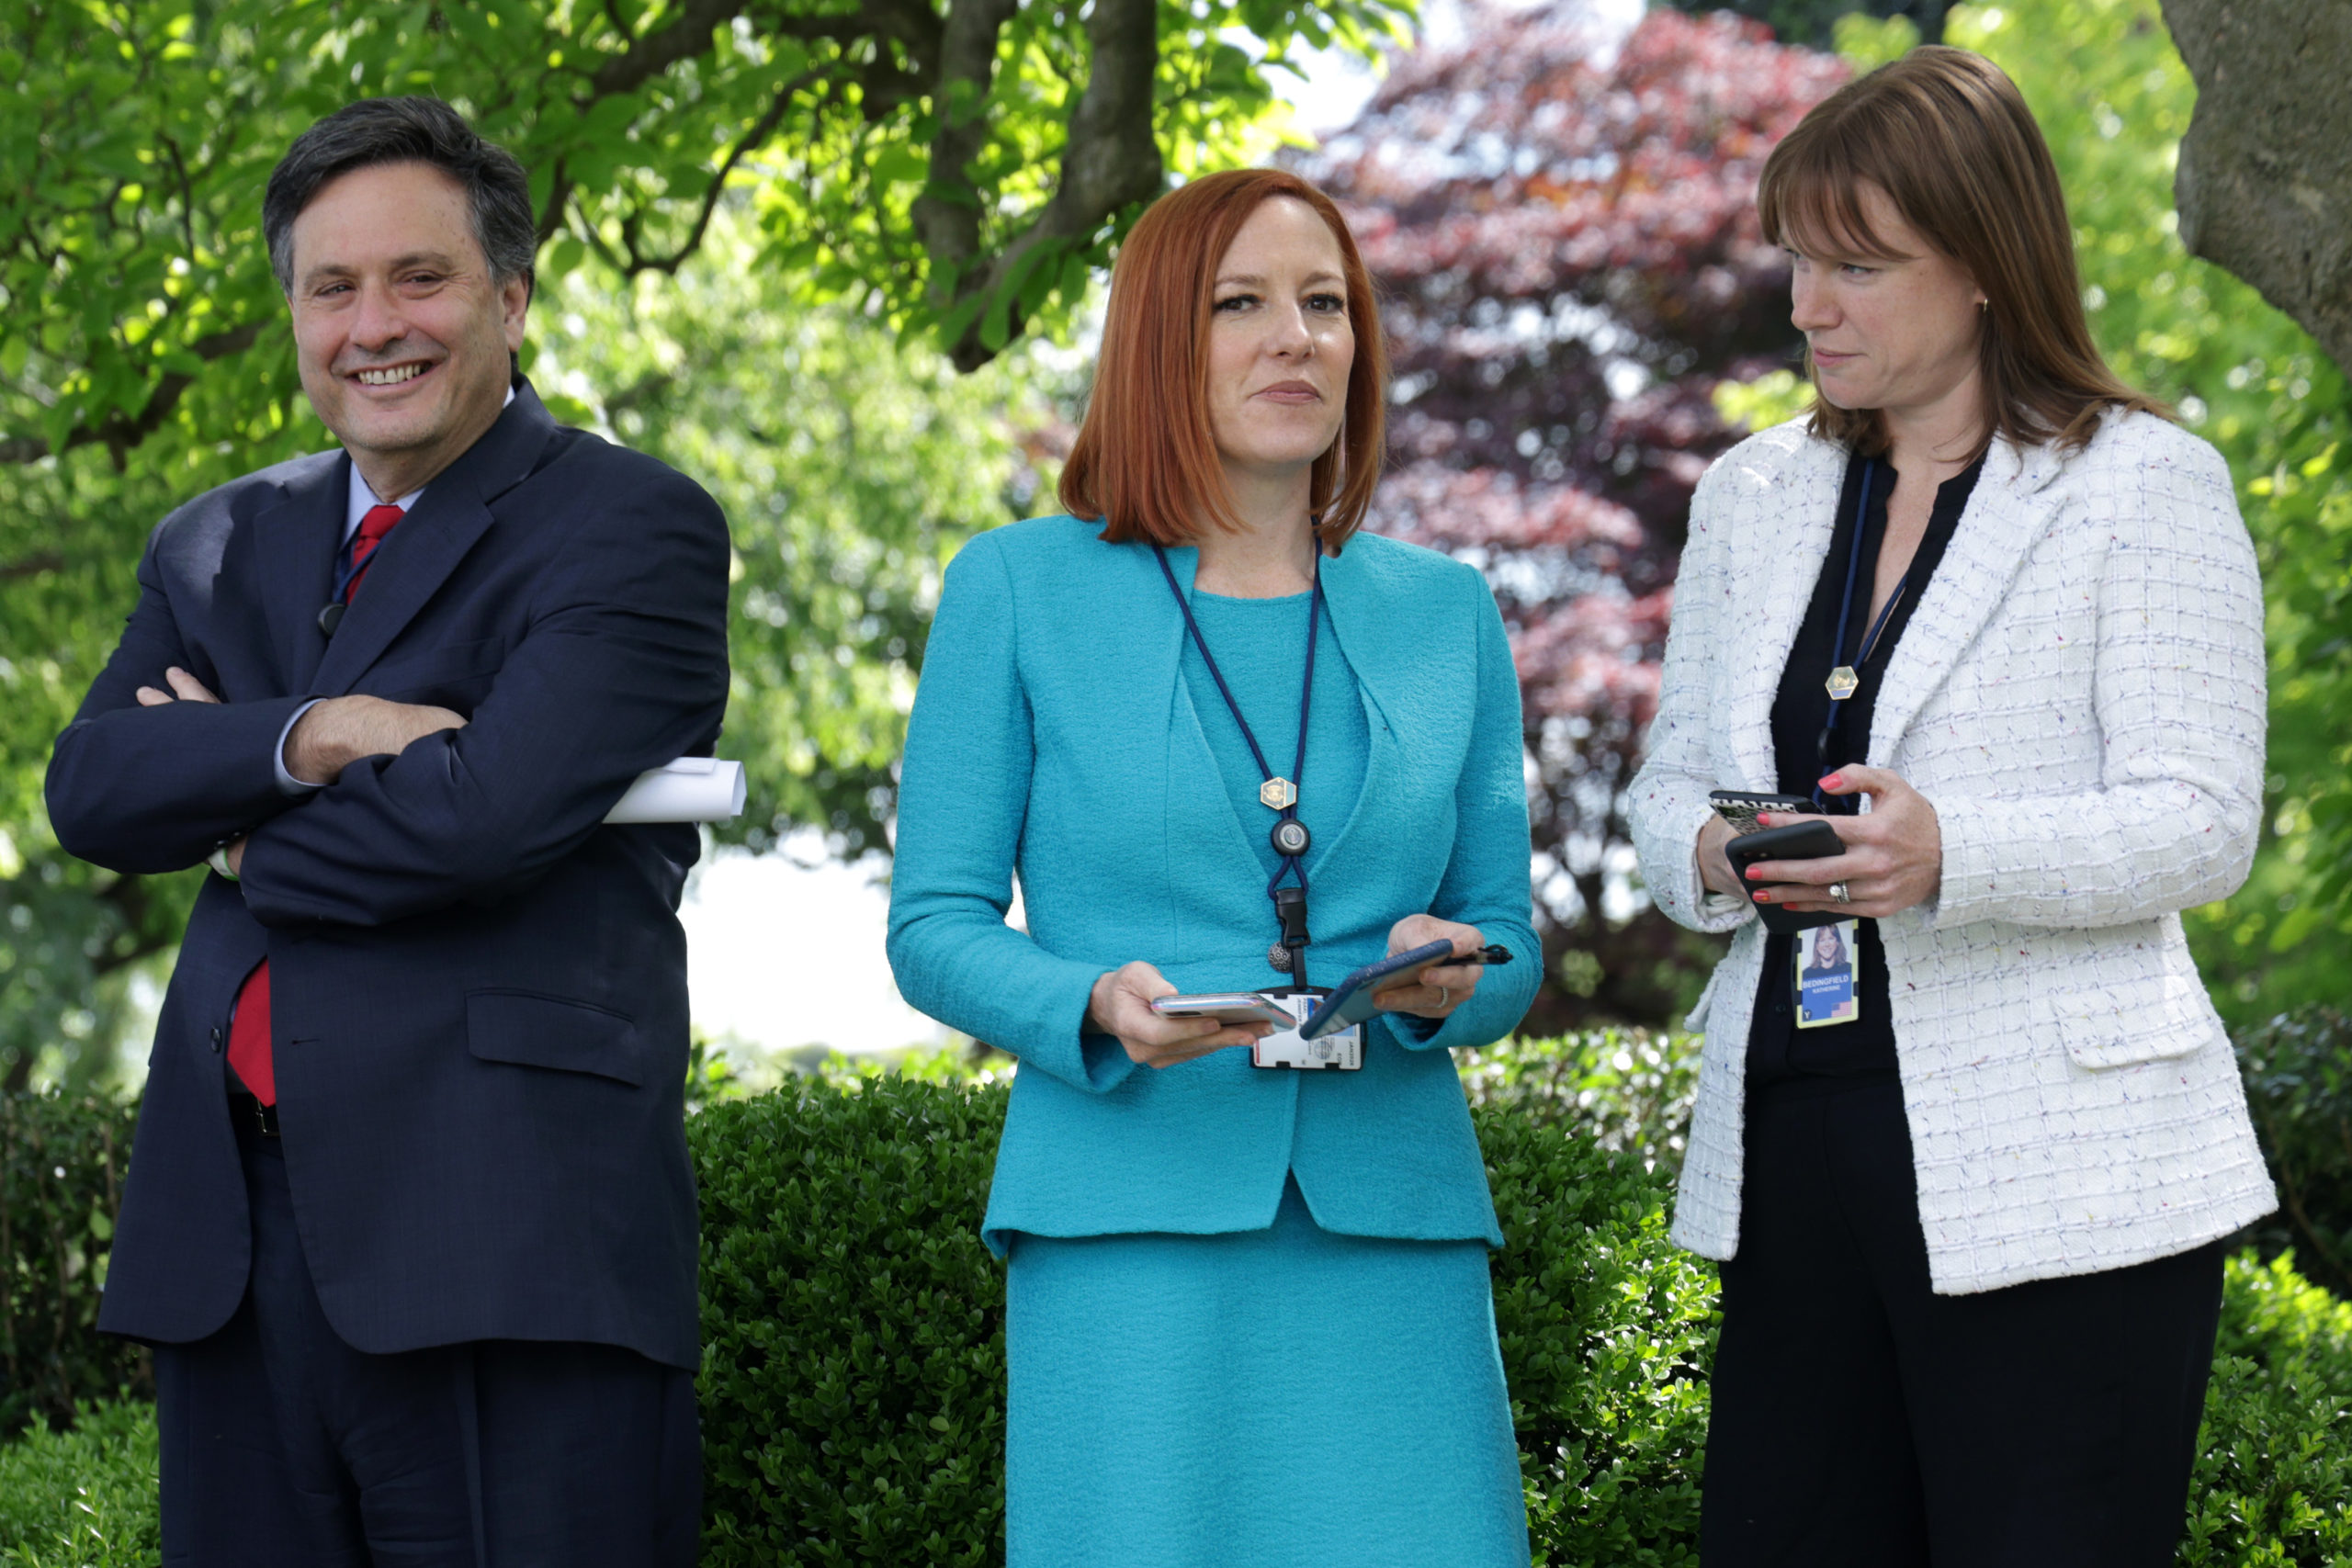 White House Chief of Staff Ron Klain, White House Press Secretary Jen Psaki and White House Communications Director Kate Bedingfield wait for President Joe Biden to deliver remarks on the COVID-19 response and vaccination program in the Rose Garden of the White House on May 13, 2021 in Washington, DC. (Alex Wong/Getty Images)